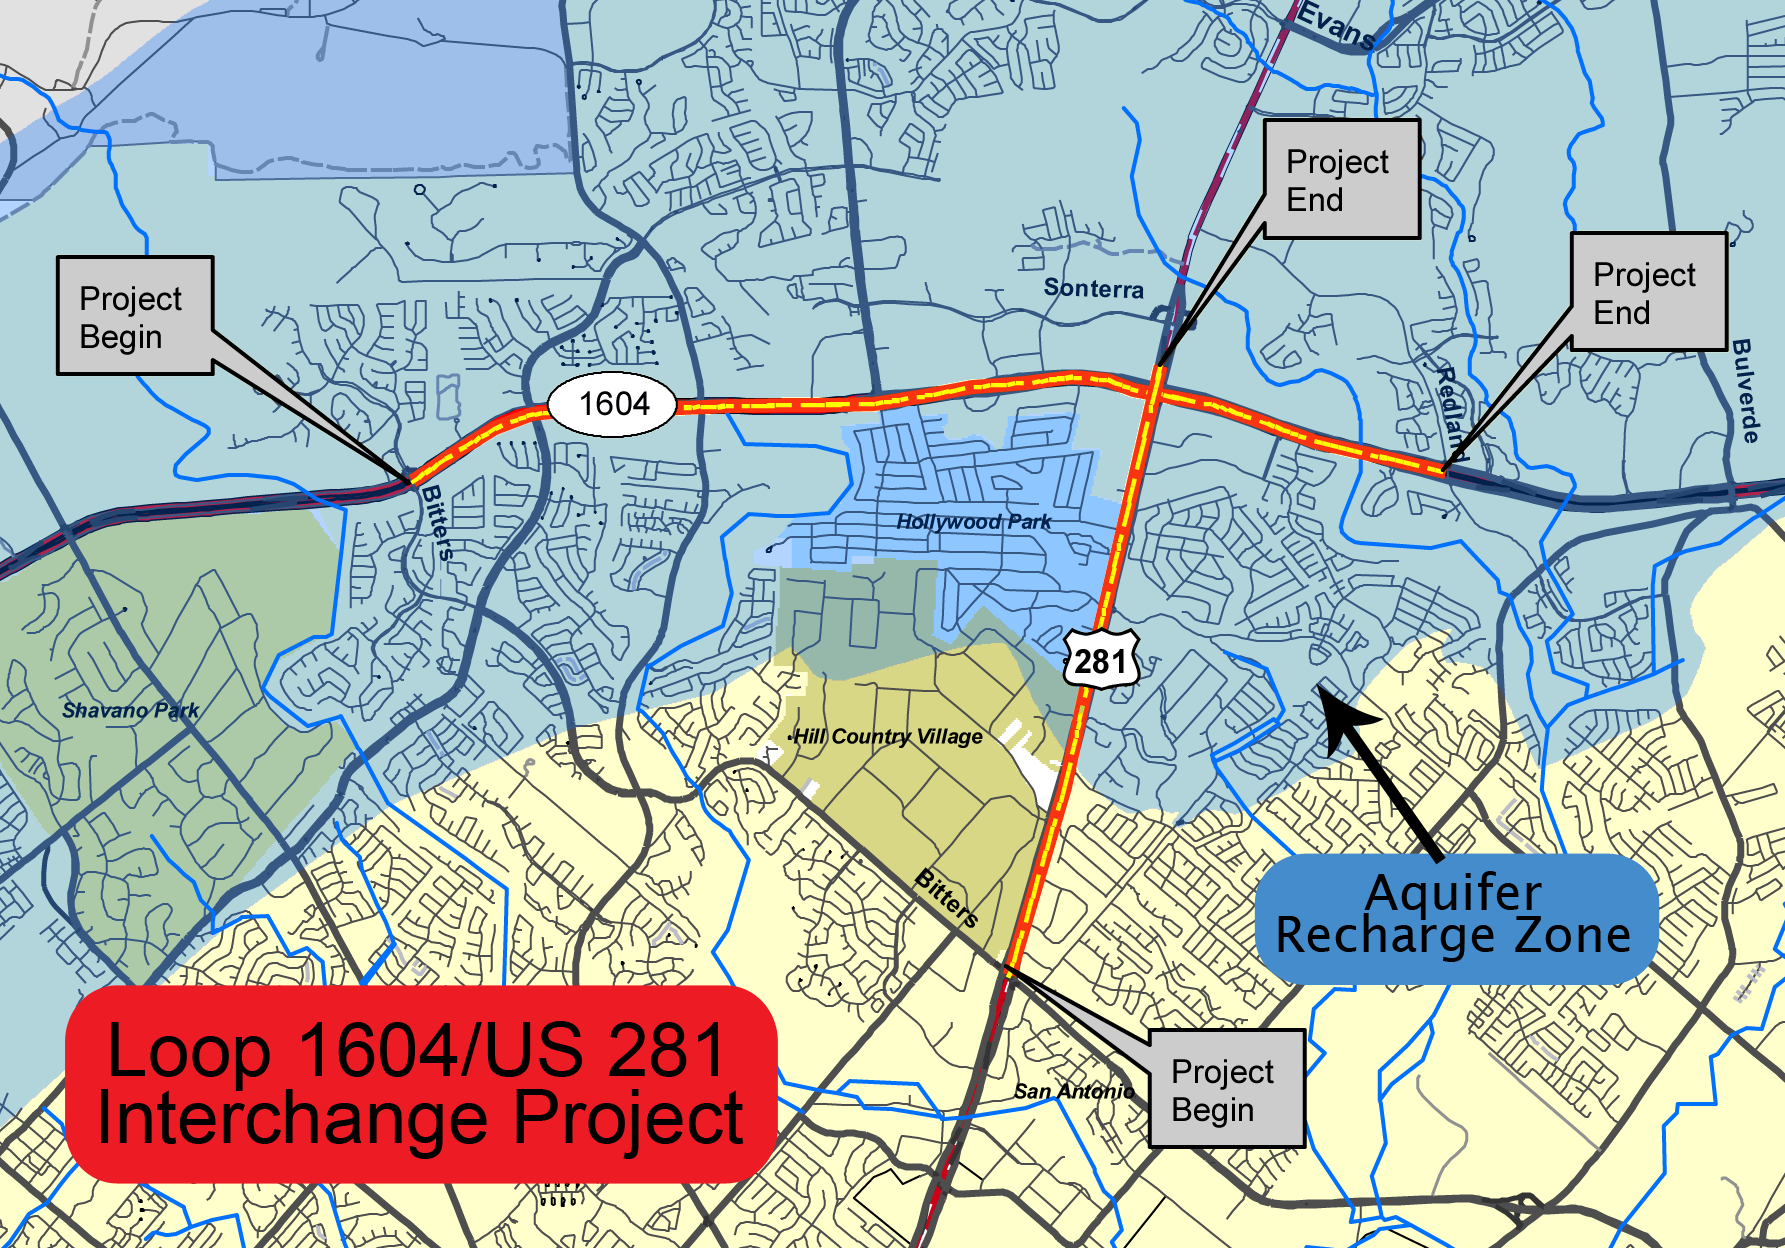 AGUA moves for injunction on US 281/Loop 1604 highway project